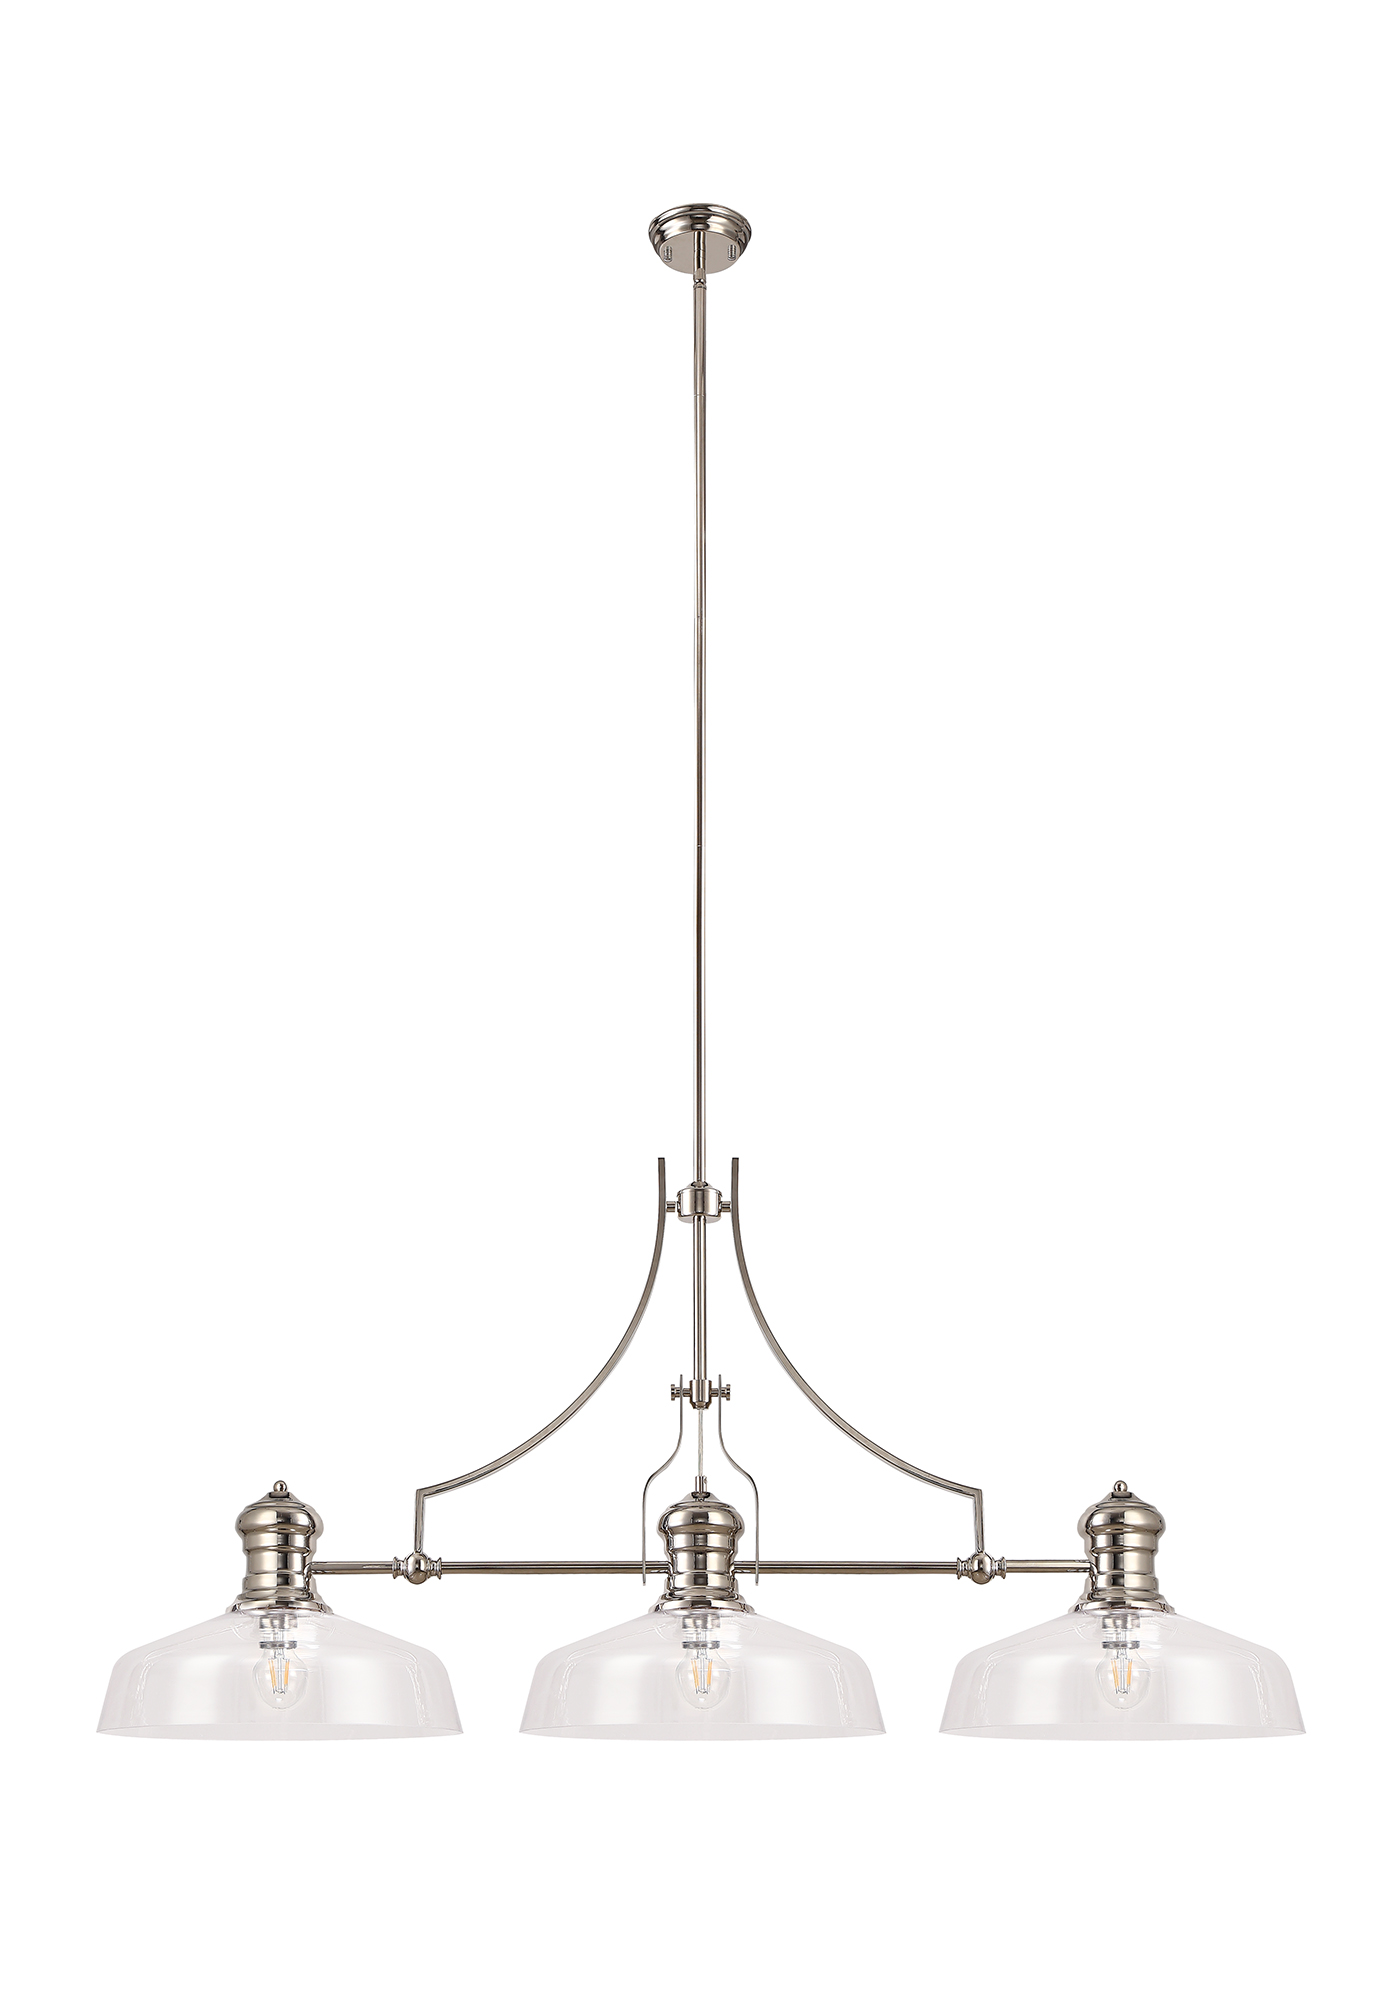 Linear Pendant With 38cm Flat Round Shade, 3 x E27